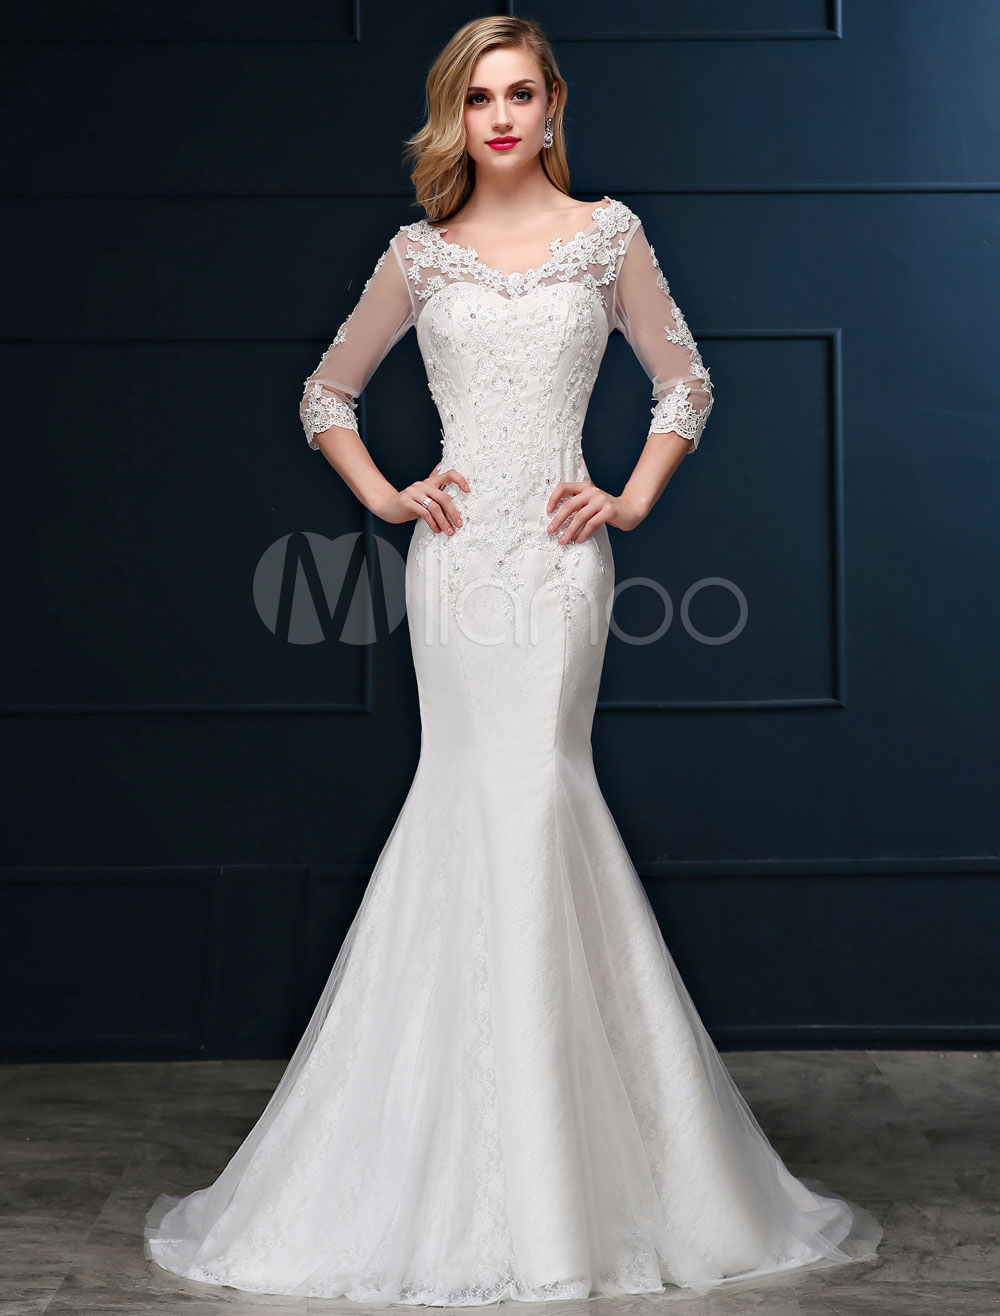 Mermaid Wedding Dress Lace Long Sleeve Bridal Dress V Neck Beaded Backless Slim Fit Ivory Wedding Gown With Train